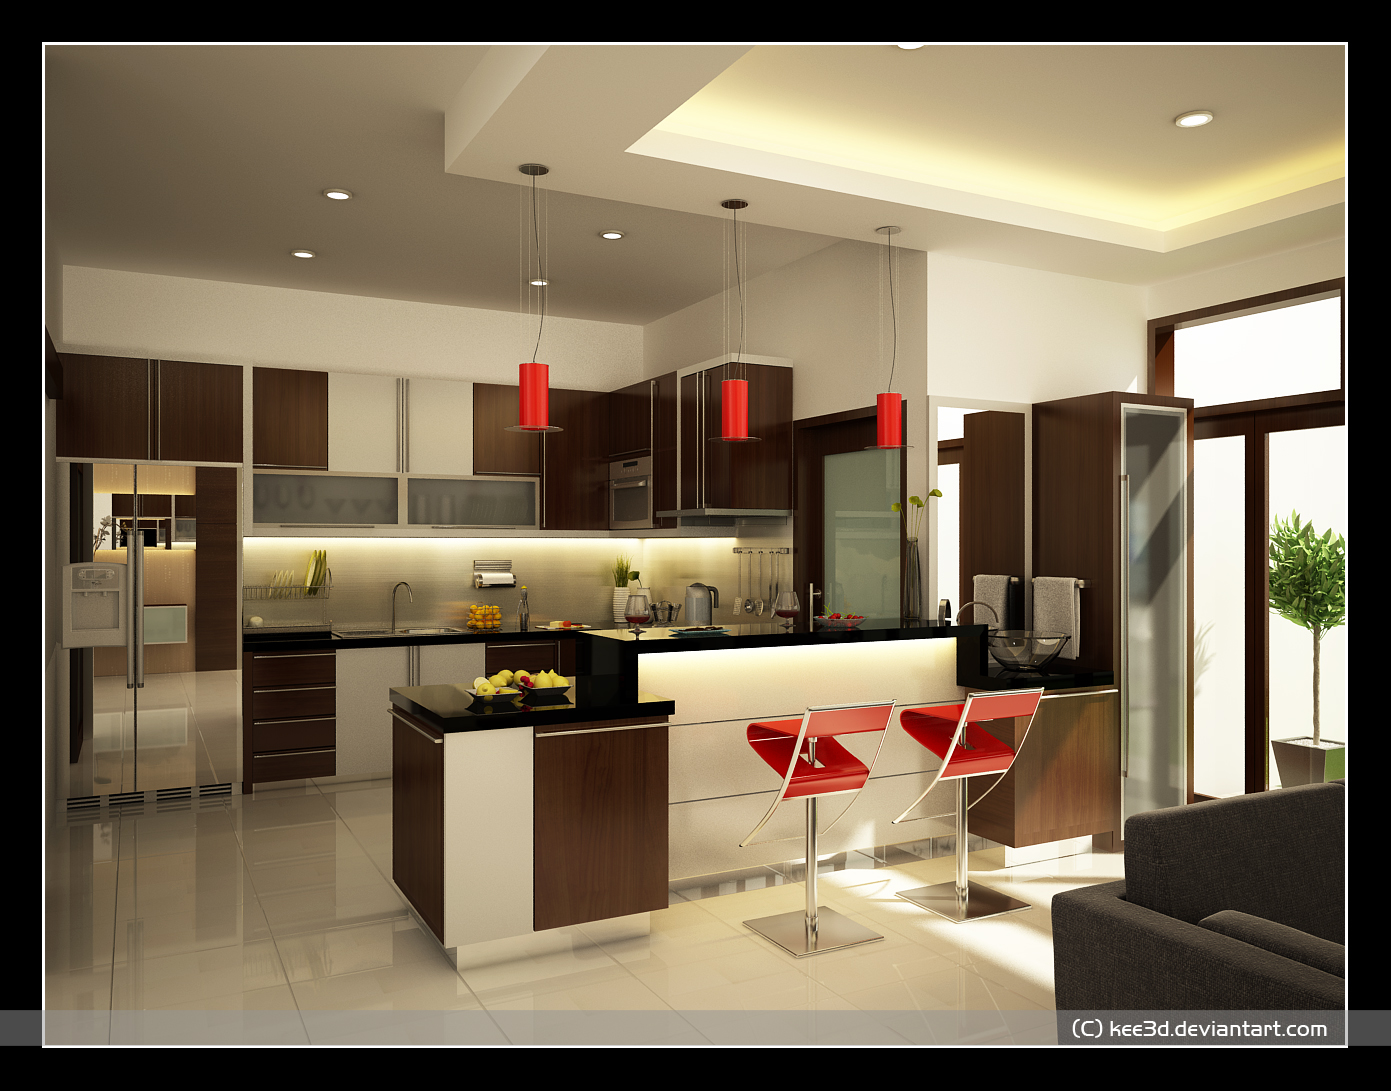 kitchen design ideas set 2 kitchen remodeling ideas by Octo Brilian